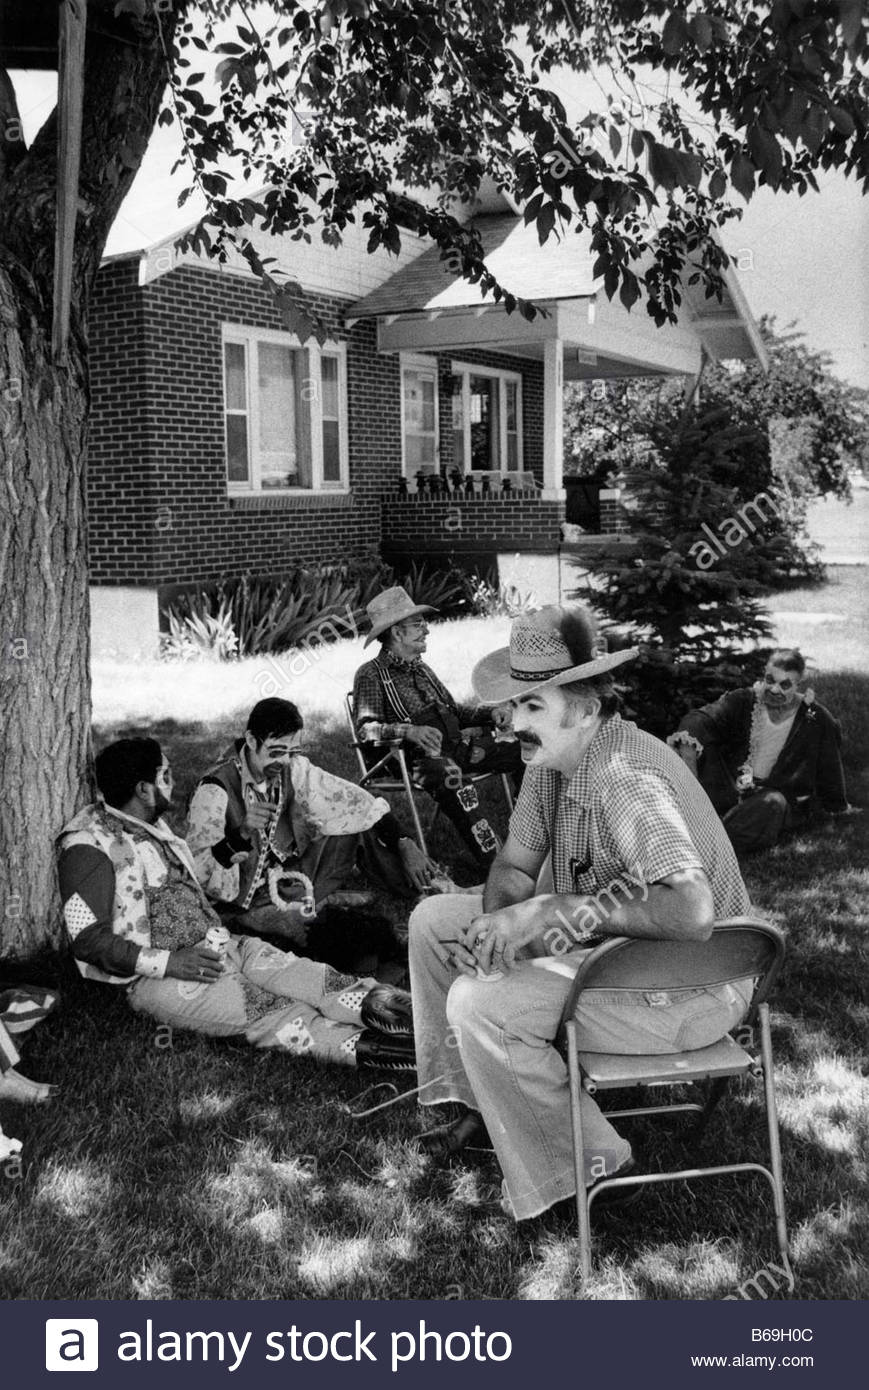 One year on the road in the USA during 1981 Resting clowns at Basque Festival in Elko Nevada - Stock Image